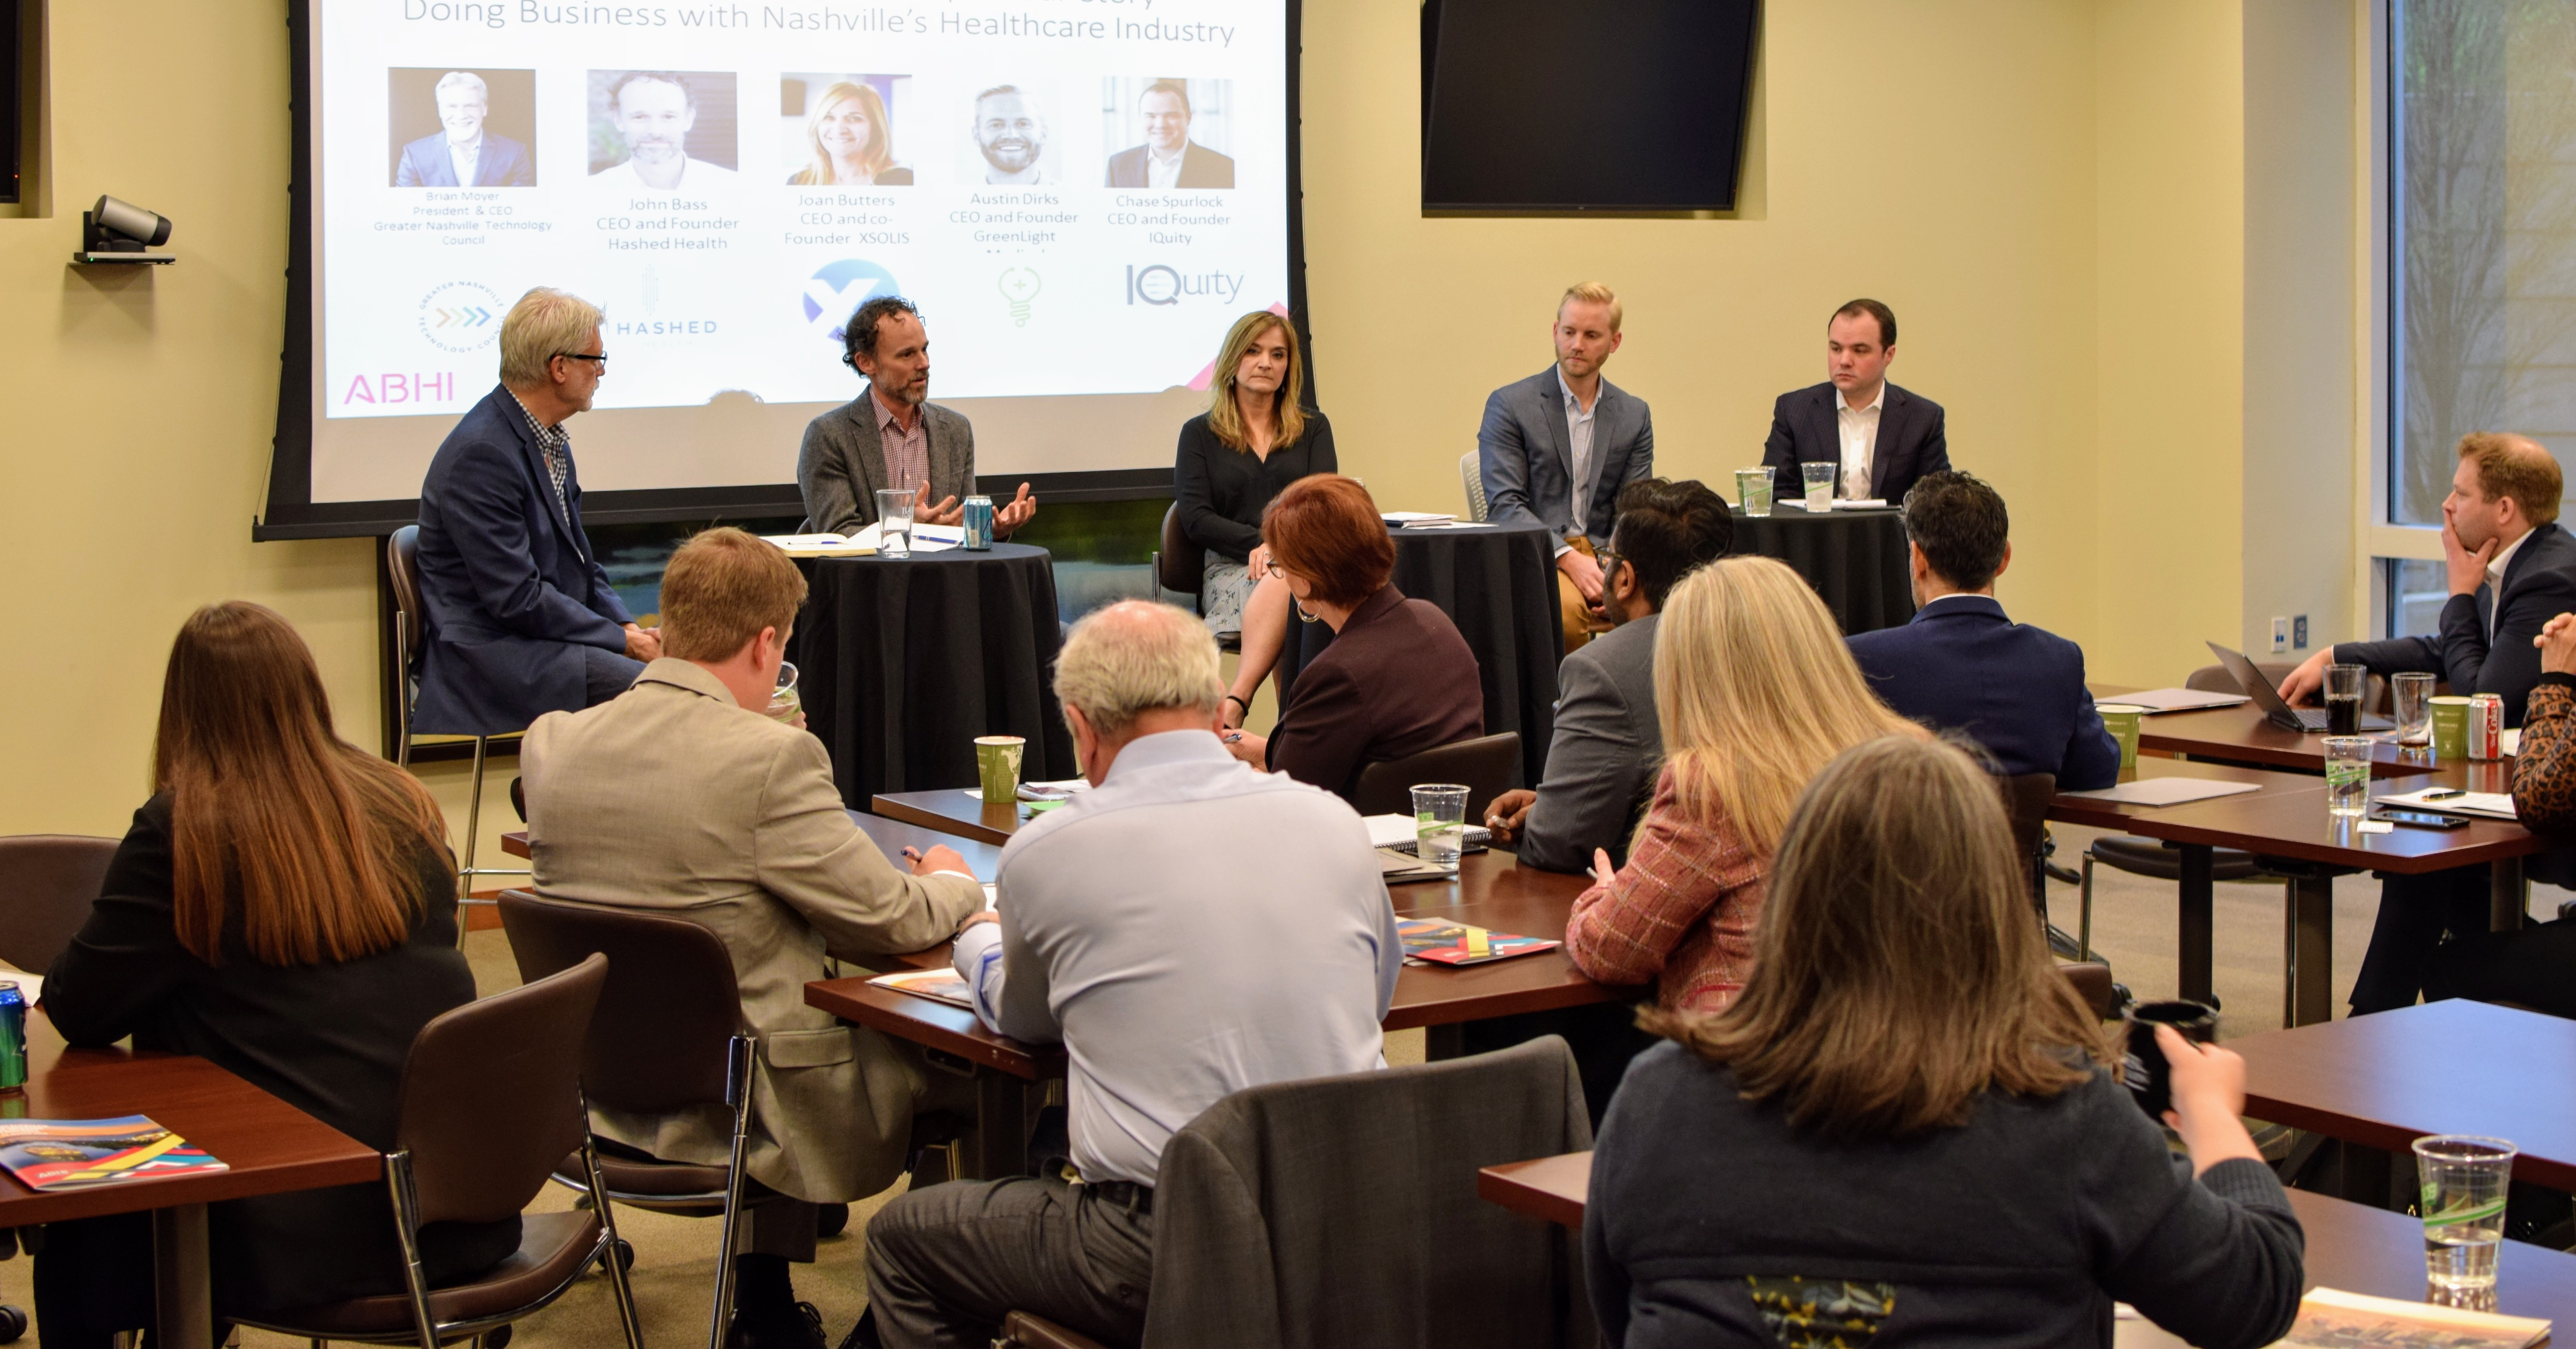 Trust and Transparency: Themes from Nashville's Healthcare Industry